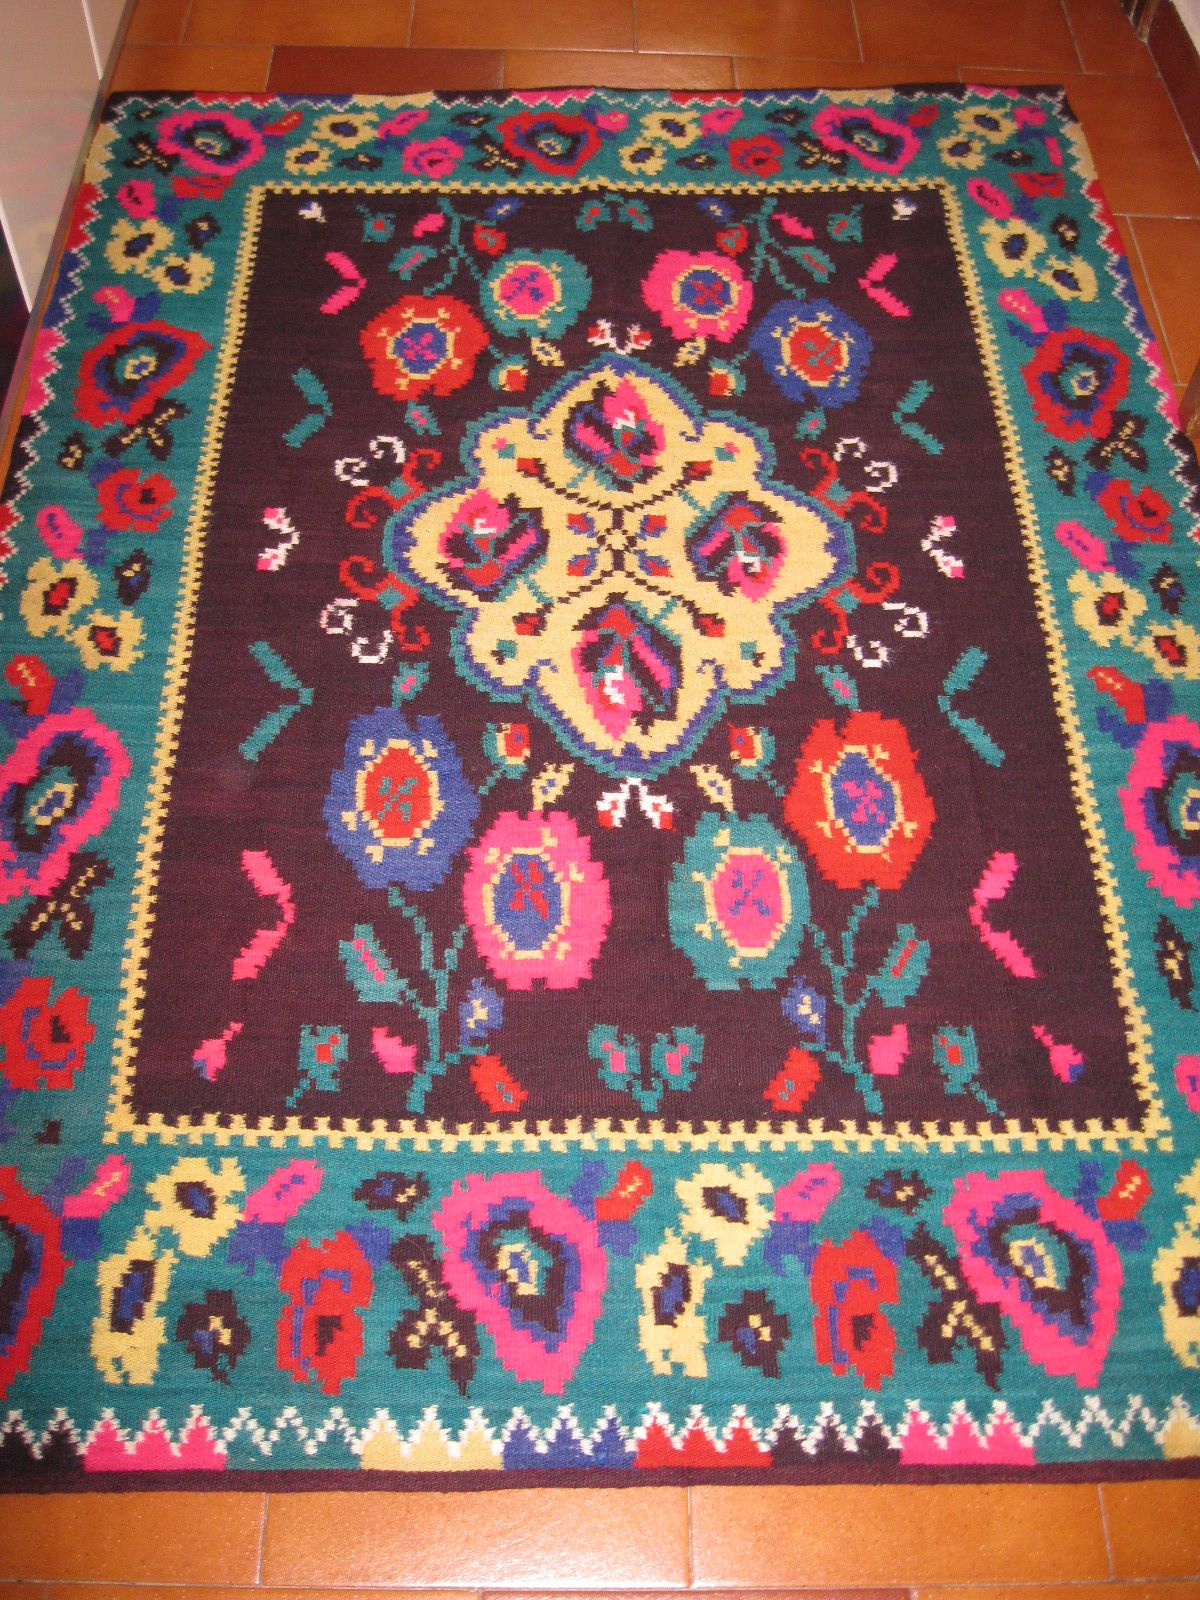 Beautiful Antique Traditional Romanian Woven Wool Carpet Rug With Fl Pattern Absolutely Stunning And